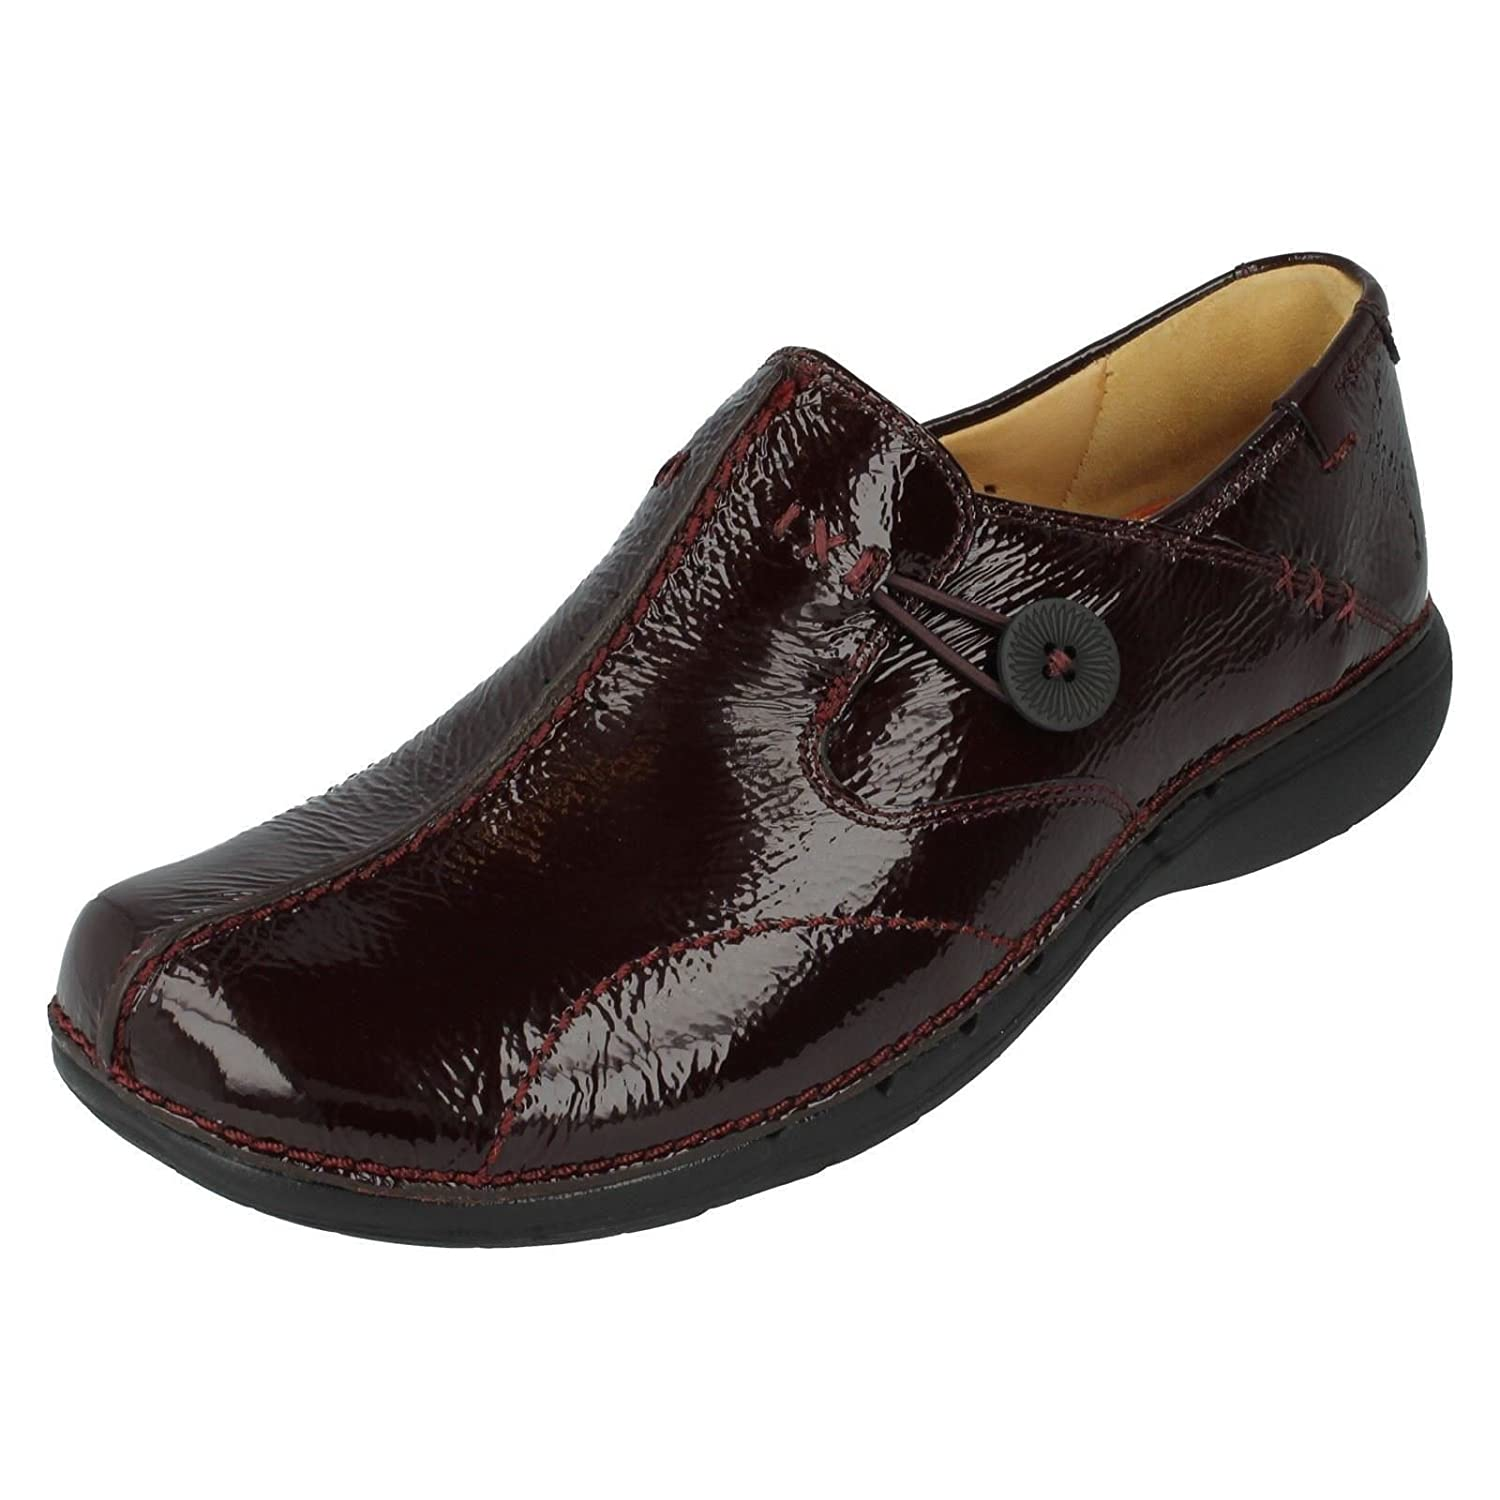 Clarks Loop Black Leather Leather 203128374030, Chaussures à lacets B000LEQMF2 femme 19995 Rouge b208e5a - automatisms.space